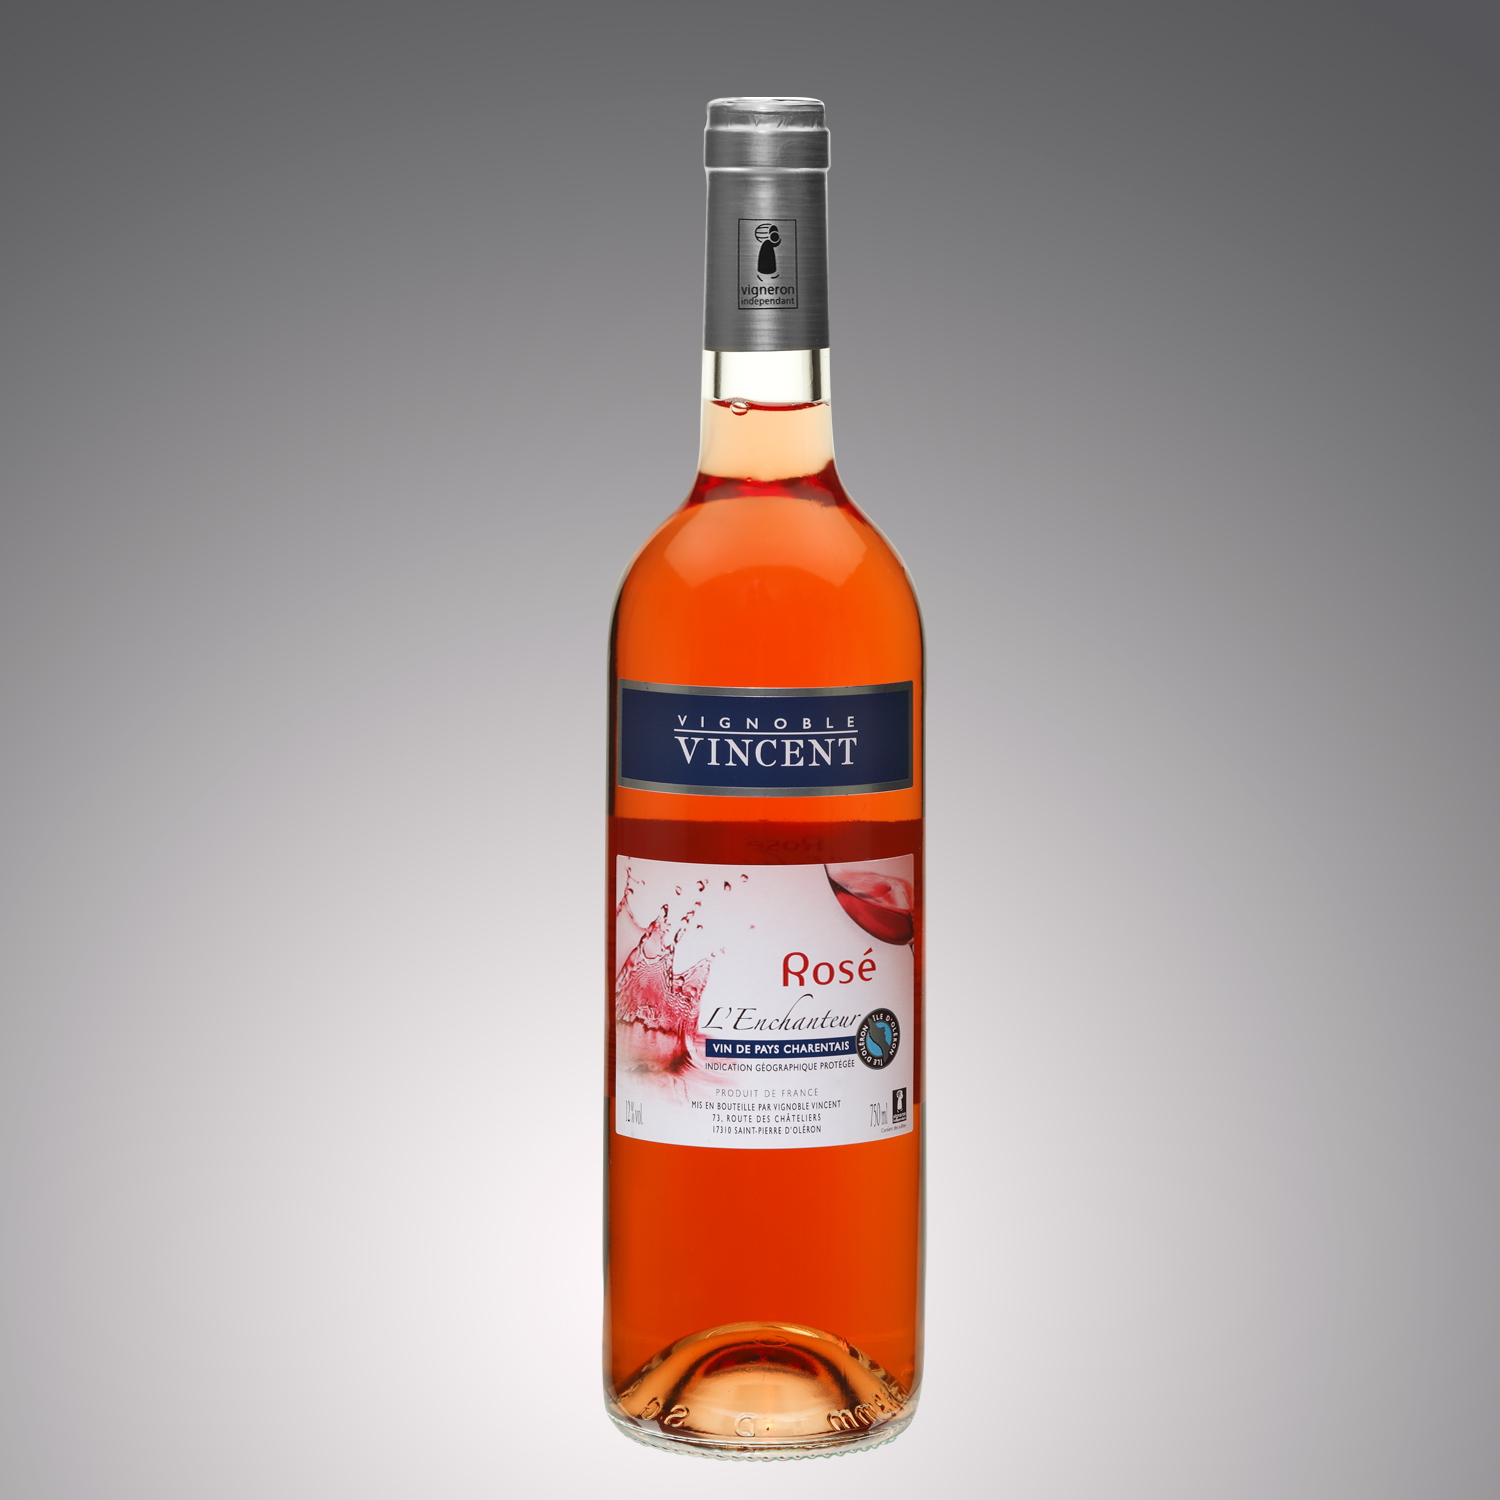 vin rosé l'enchanteur Vignoble Vincent